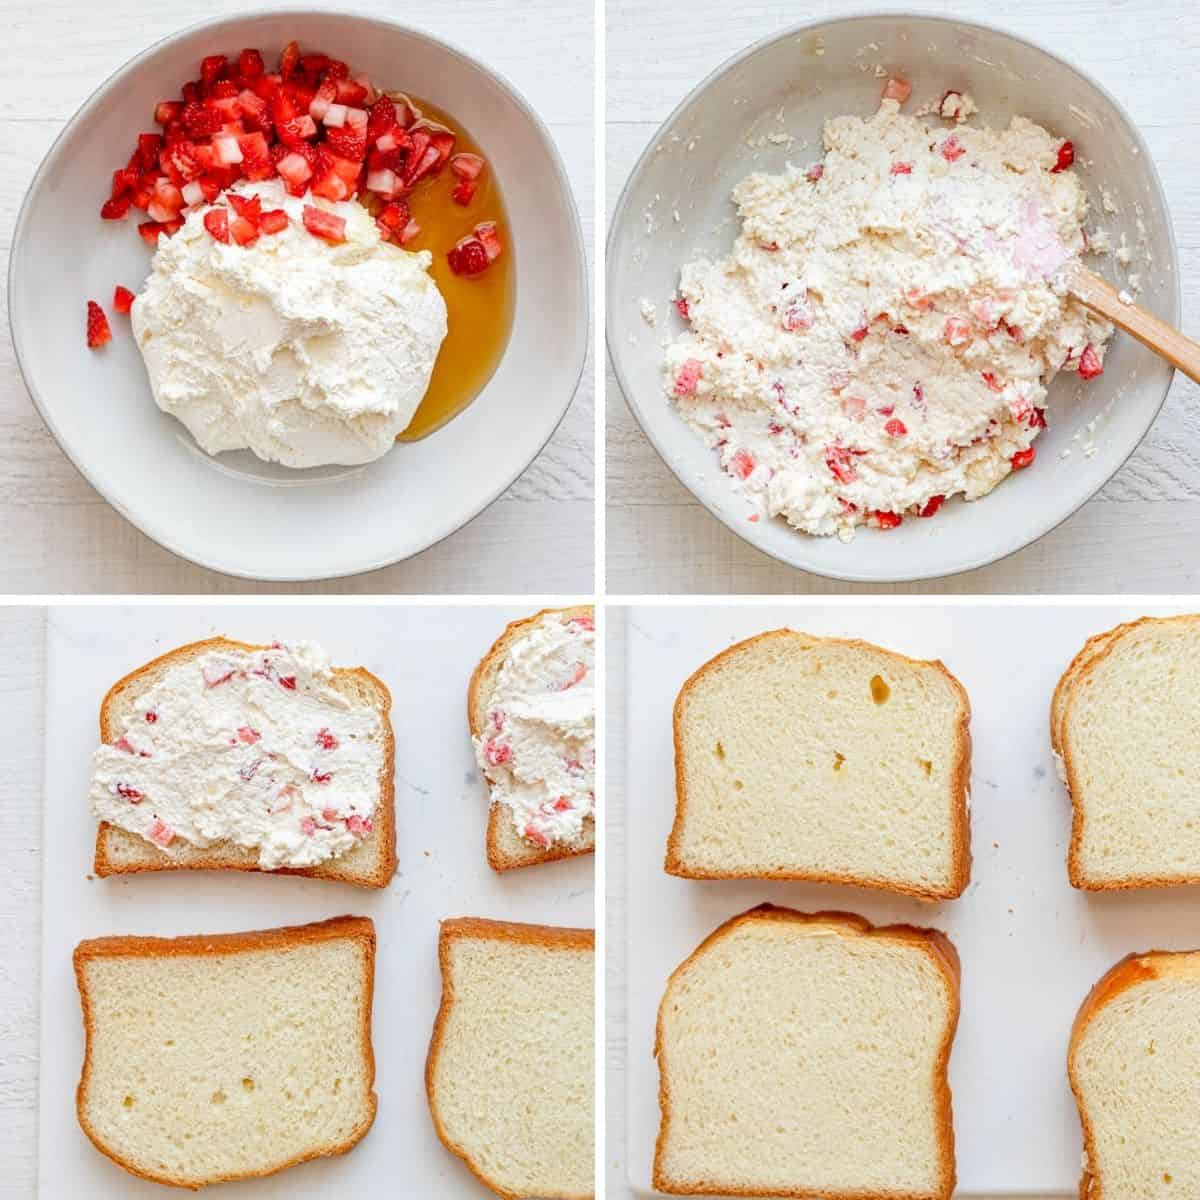 4 image collage to show how to mix the cream cheese and strawberry filling and then stuff the french toast